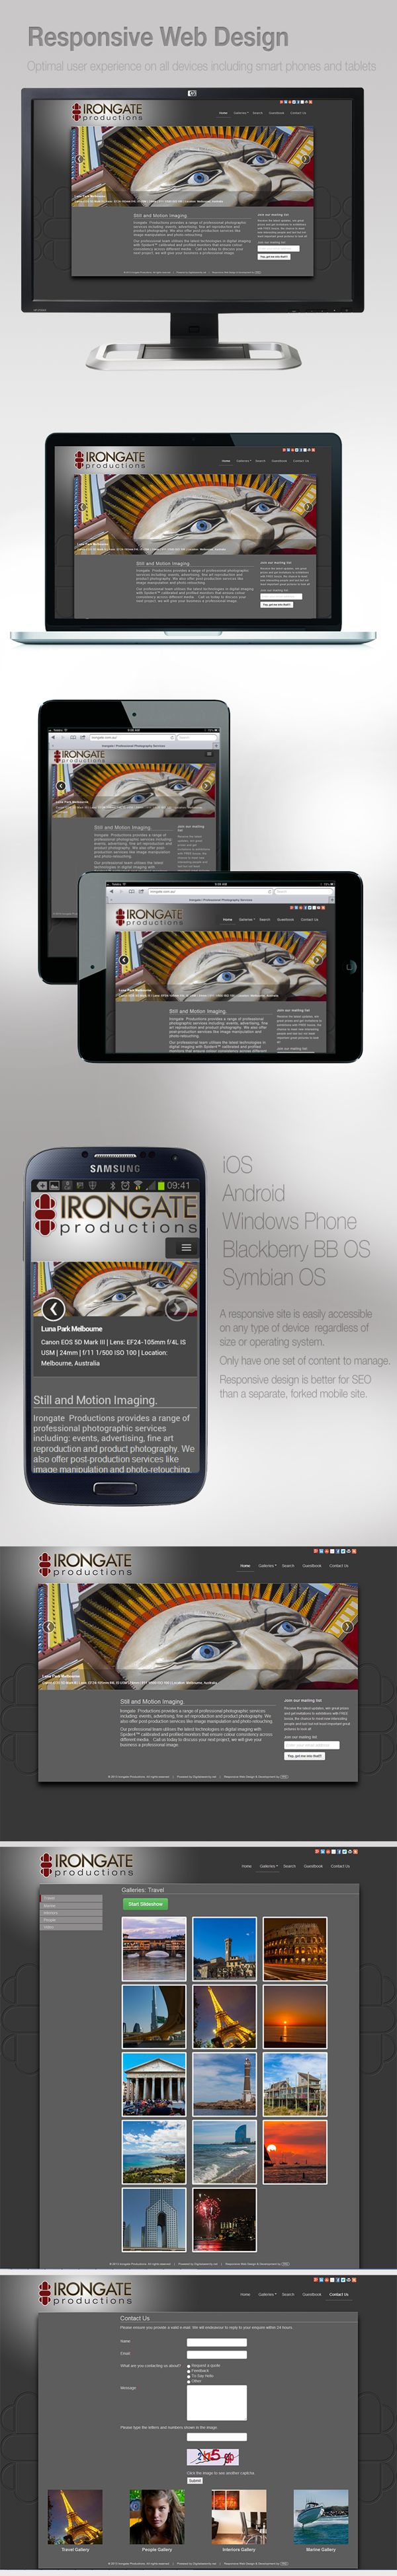 Irongate Productions | Responsive Website by FPID by Fernando Pizzani, via Behance